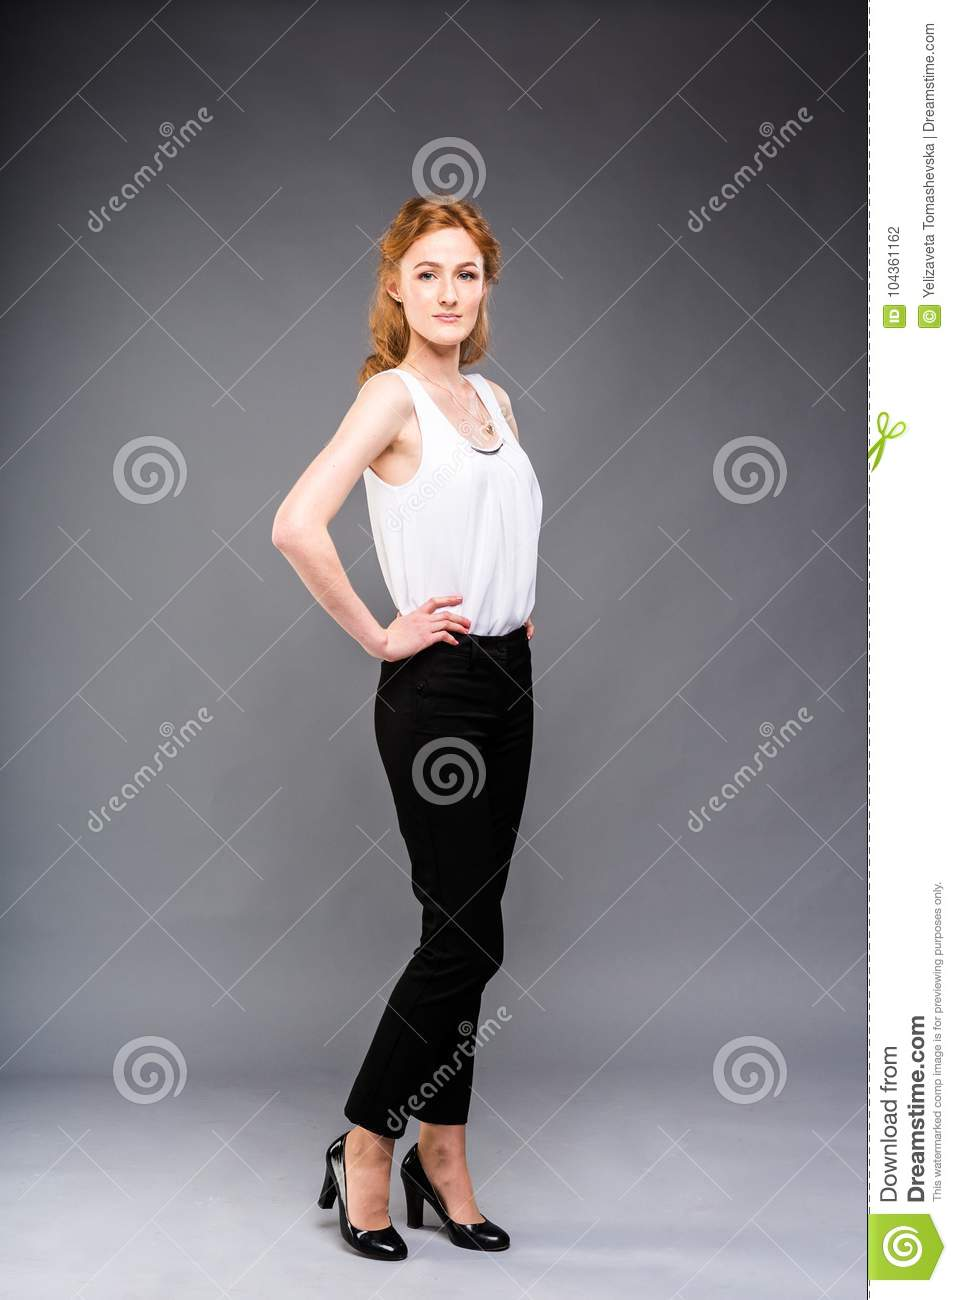 Beautiful young Caucasian woman with long red hair in high heels, black trousers and a white shirt stands in full growth on a gray